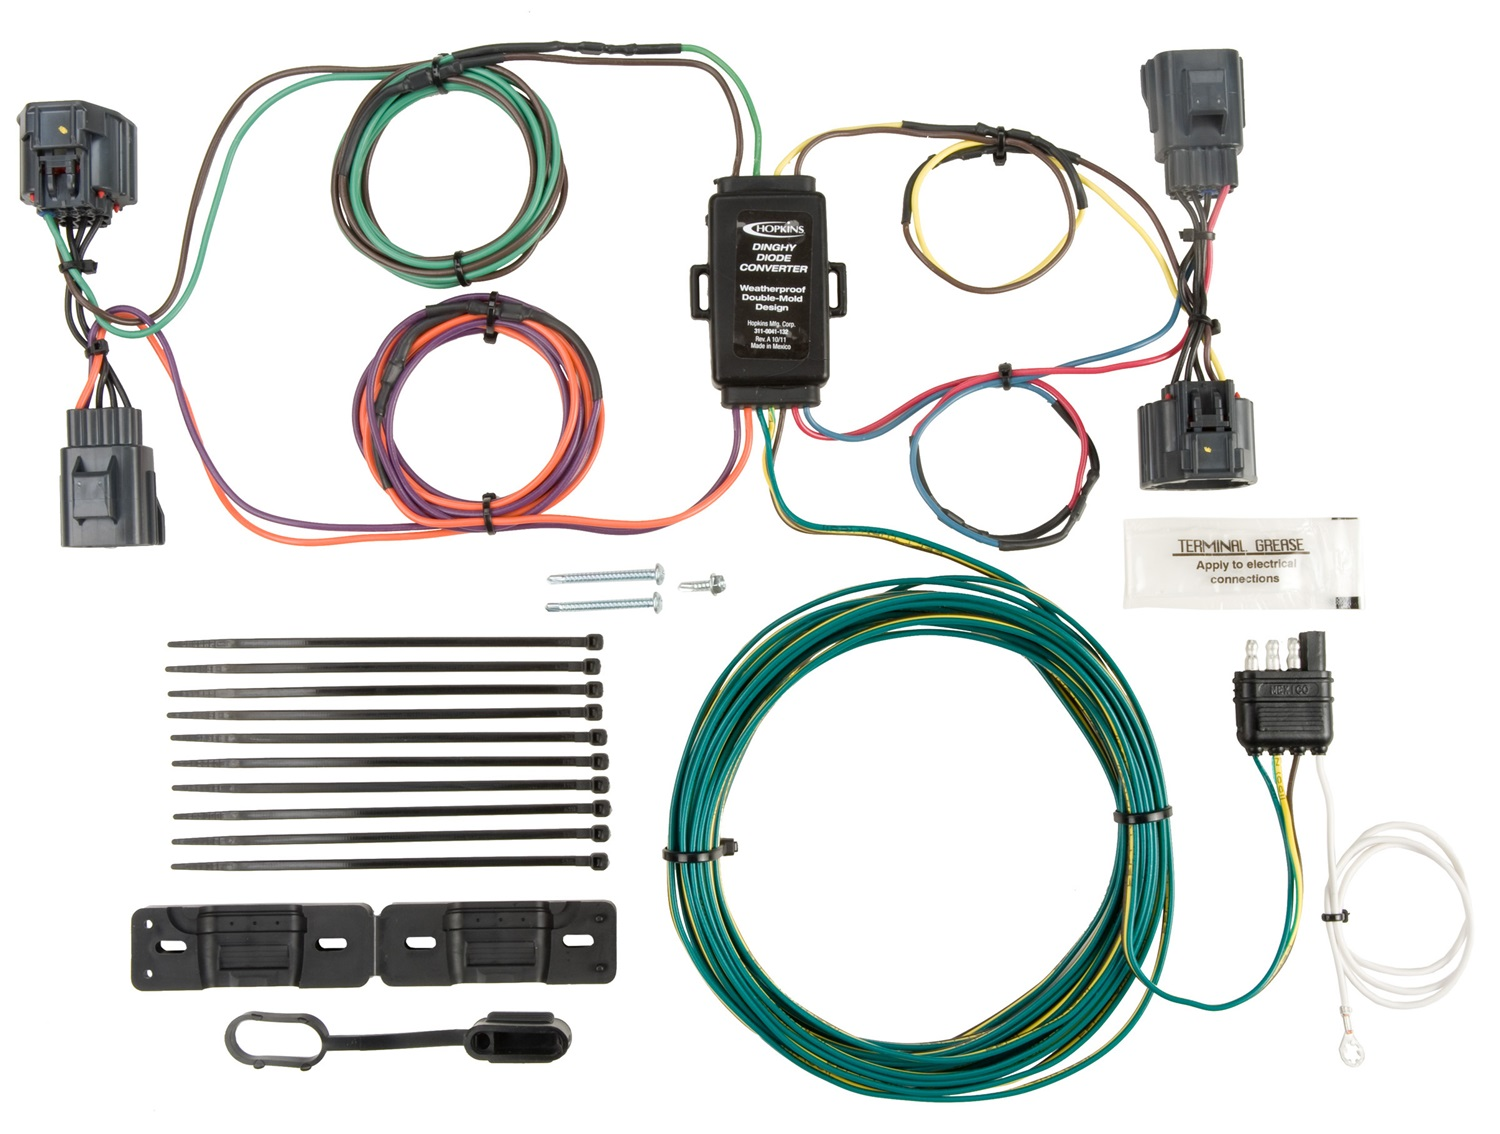 hight resolution of hopkins towing solution 56205 plug in simple vehicle to trailer wiring harness walmart com